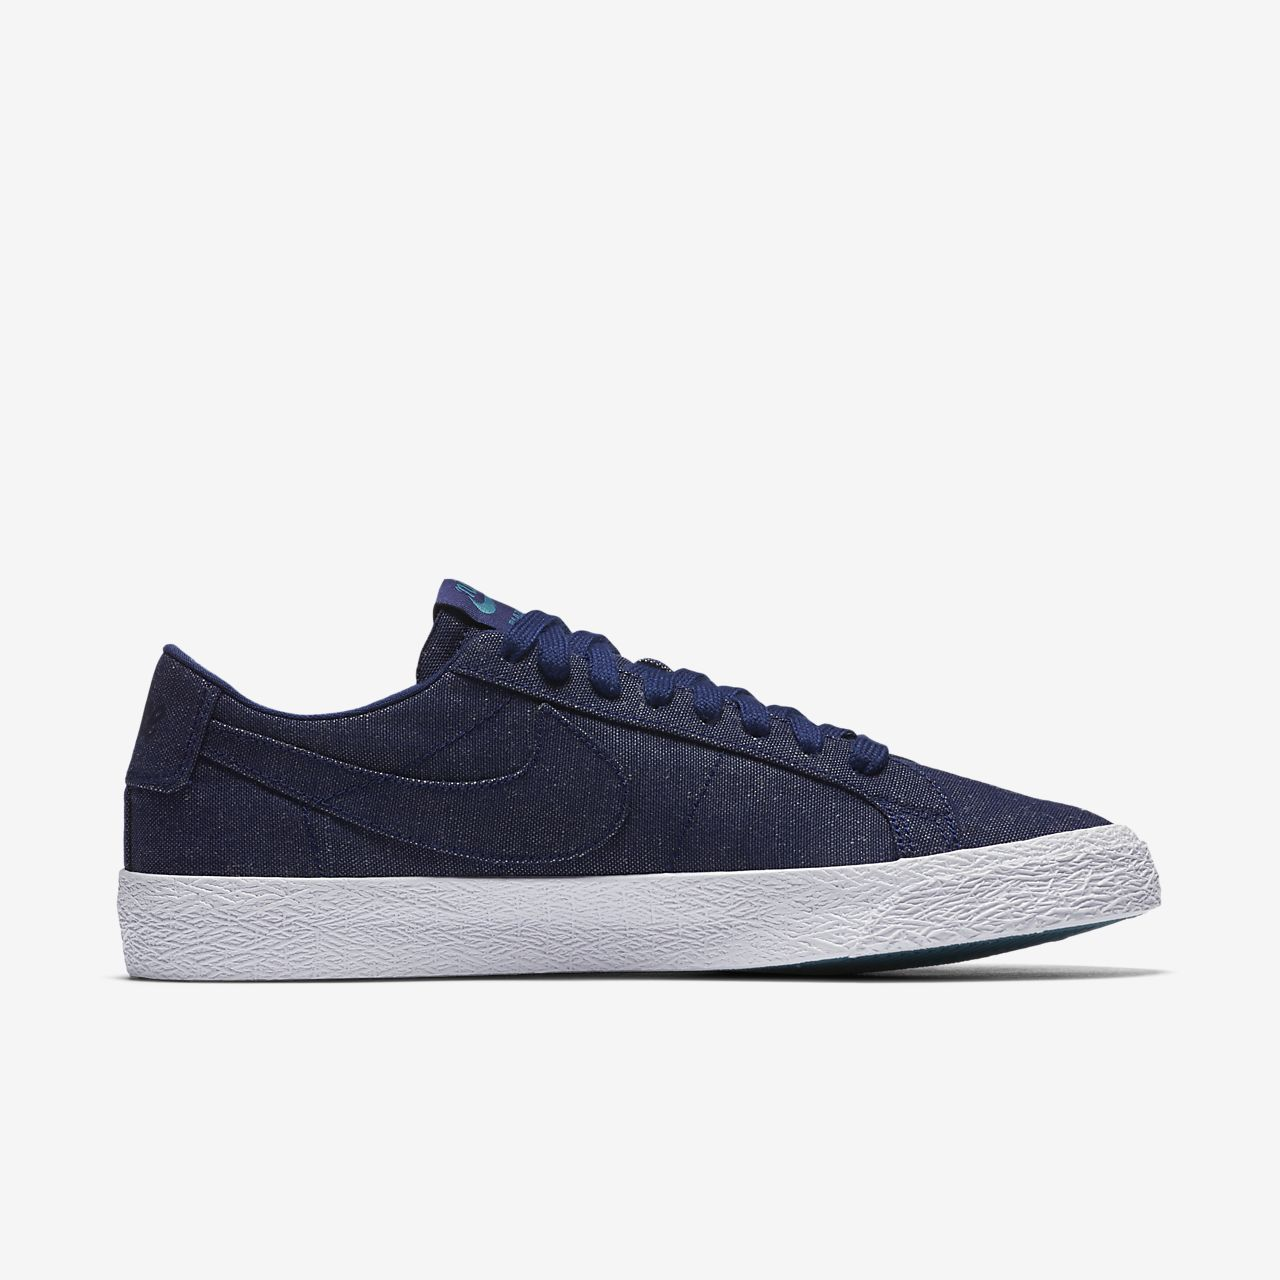 ... Chaussure de skateboard Nike SB Zoom Blazer Low Canvas Deconstructed  pour Homme 16808827d